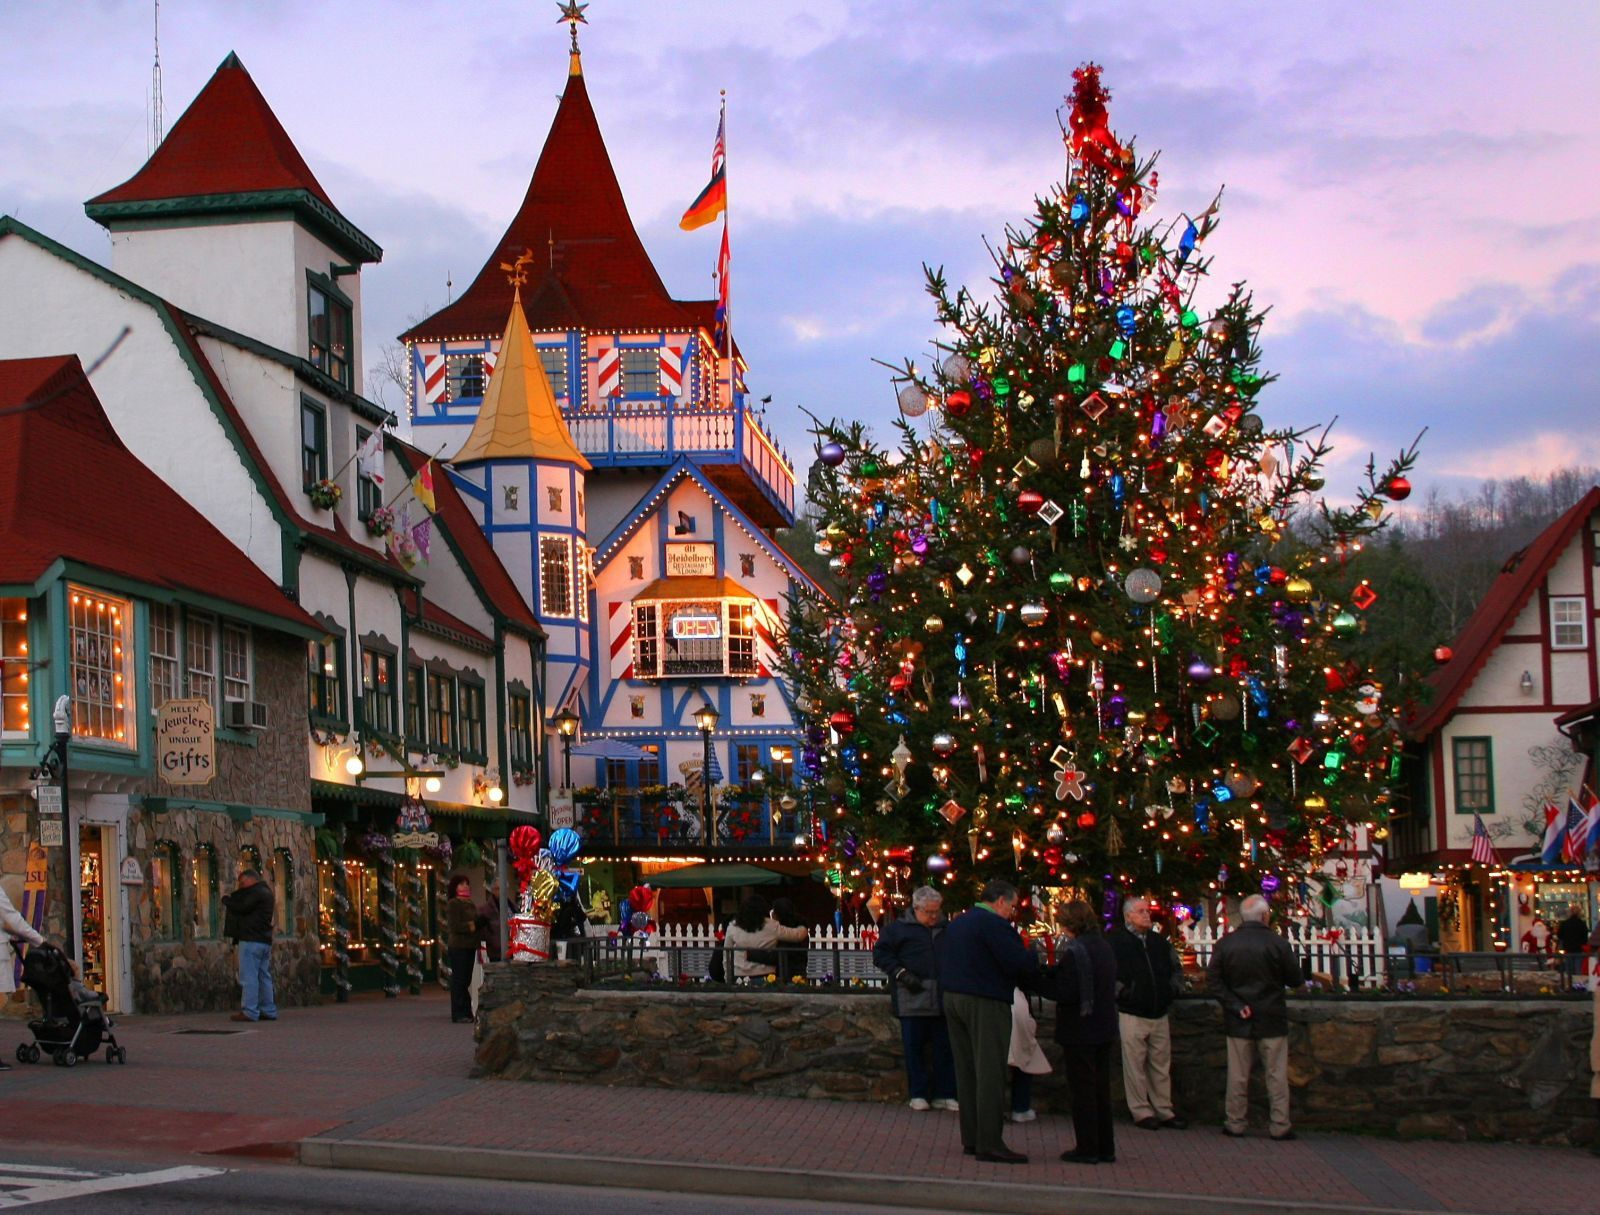 Christmas City.45 Best Christmas Towns To Visit For The Holidays Best